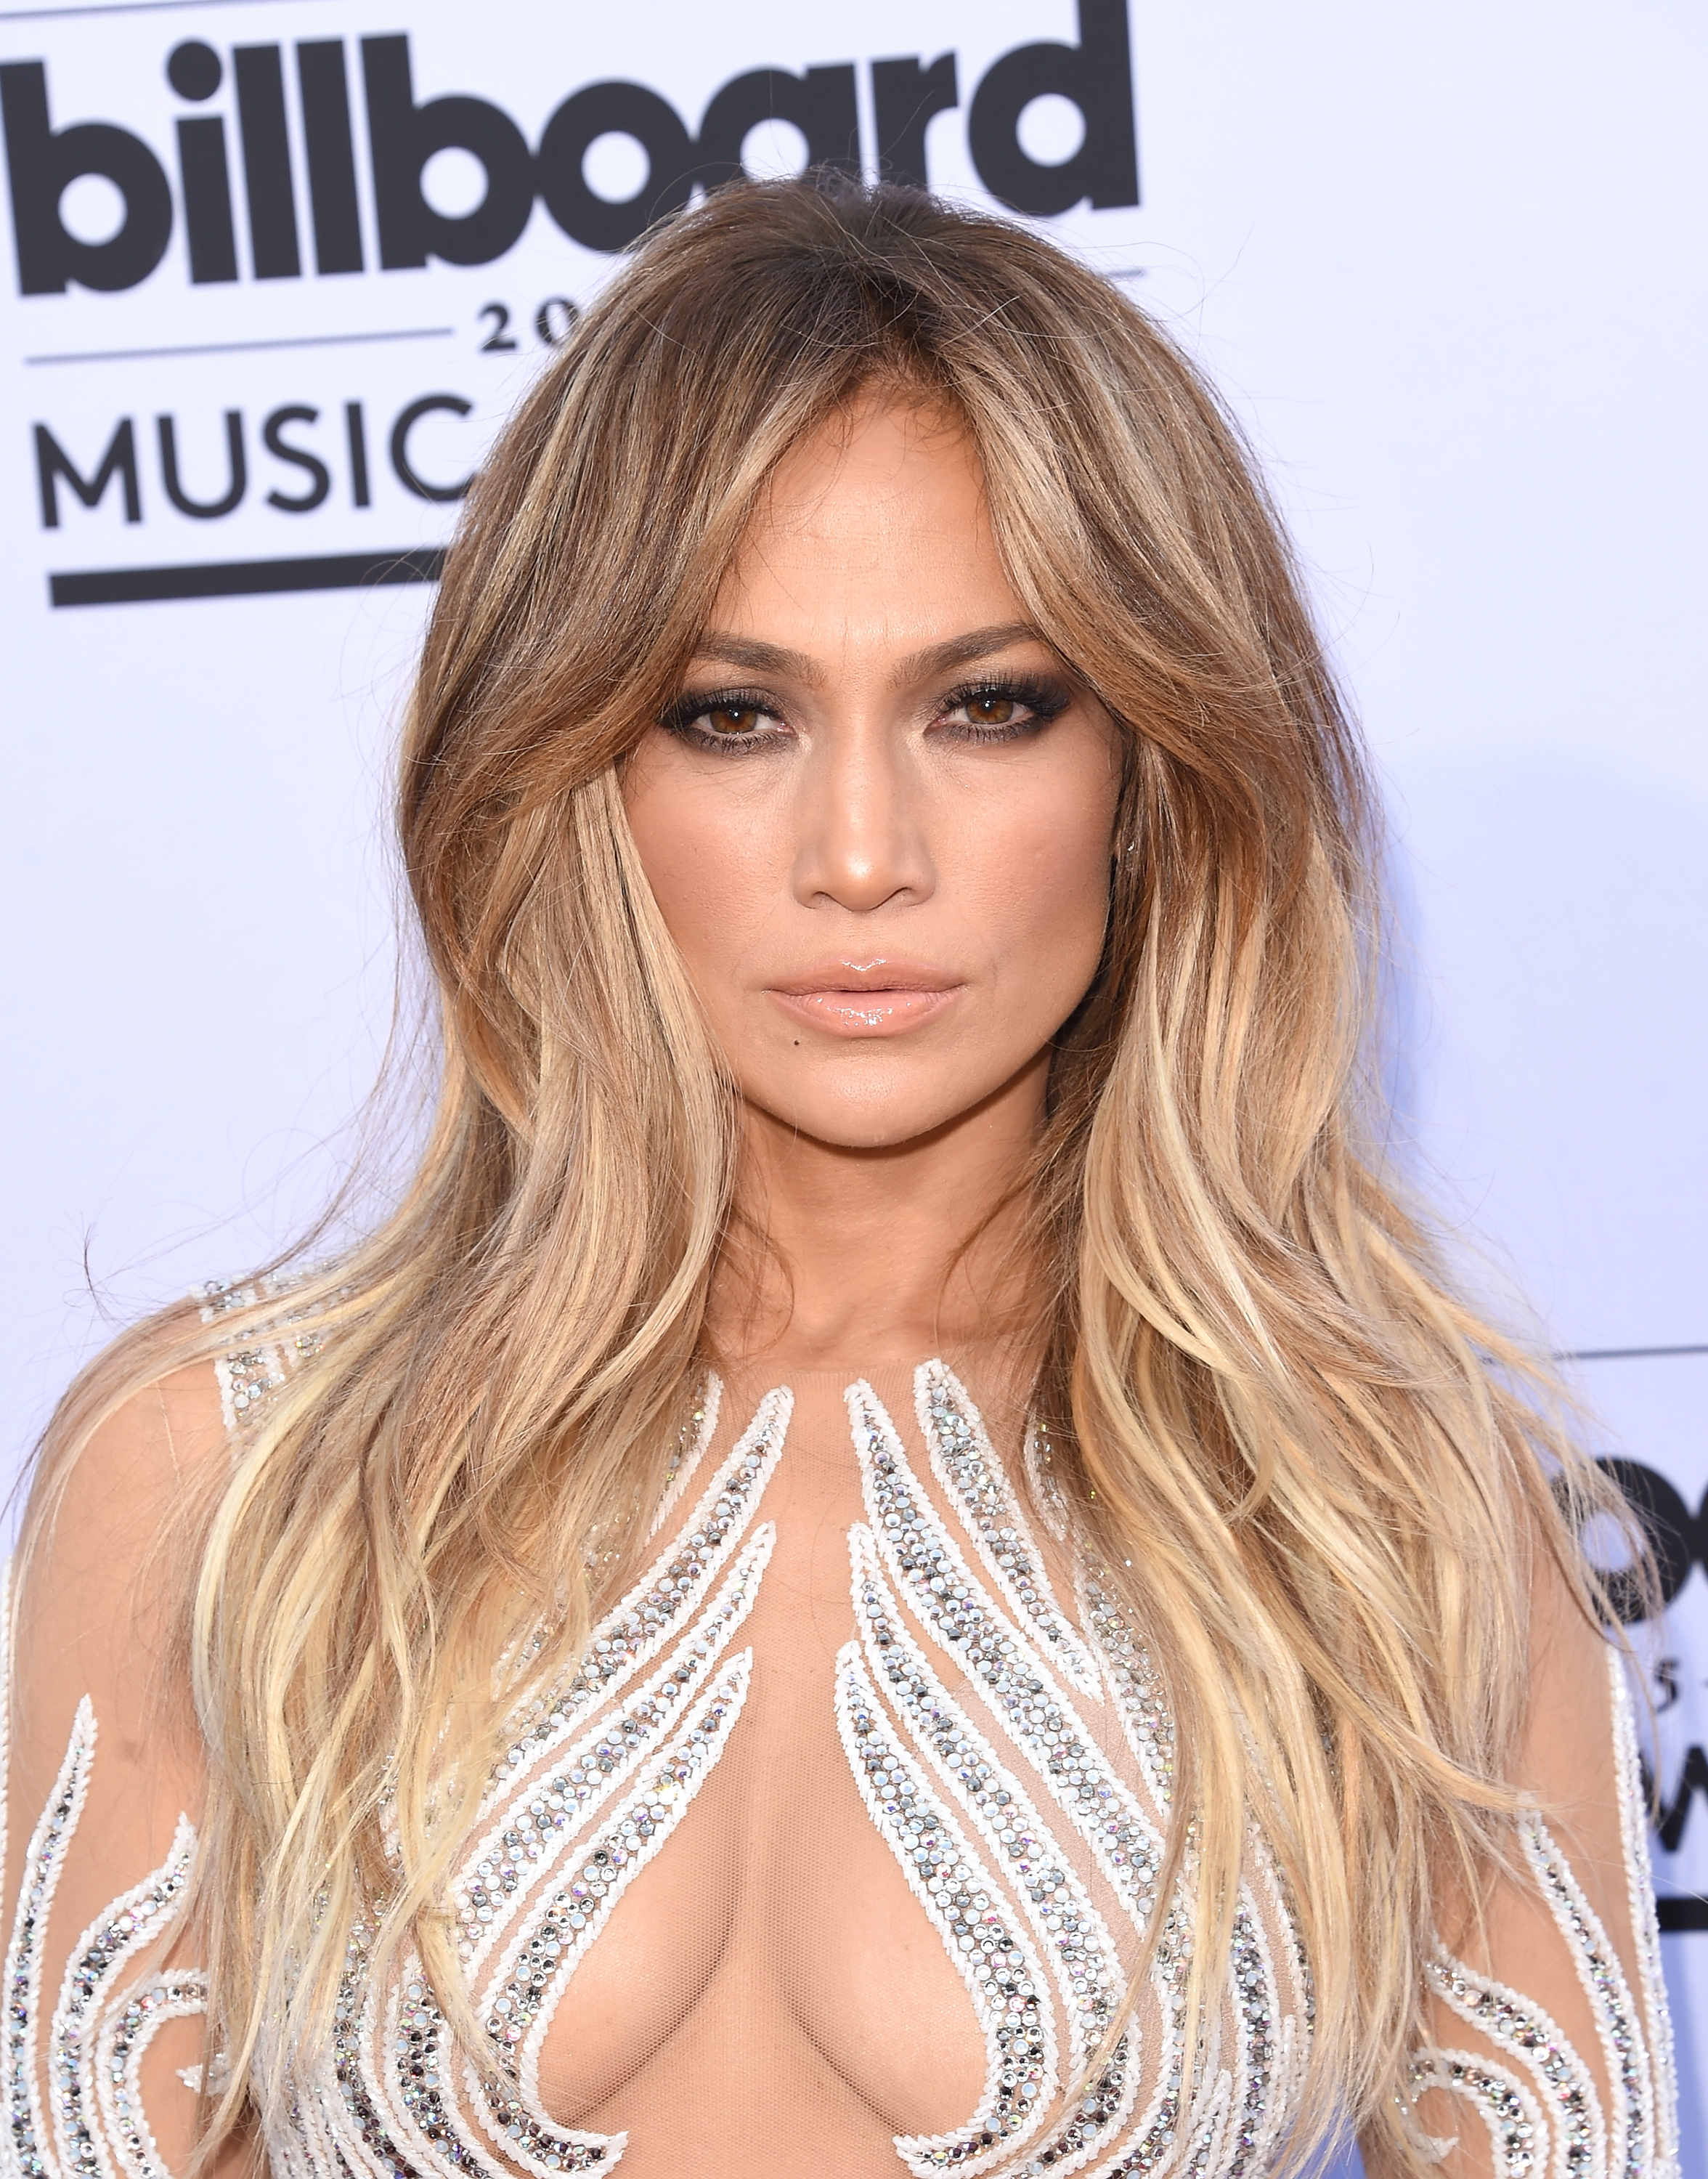 LAS VEGAS, NV - MAY 17: Actress/singer Jennifer Lopez arrives at the 2015 Billboard Music Awards at MGM Garden Arena on May 17, 2015 in Las Vegas, Nevada. (Photo by Jason Merritt/Getty Images)